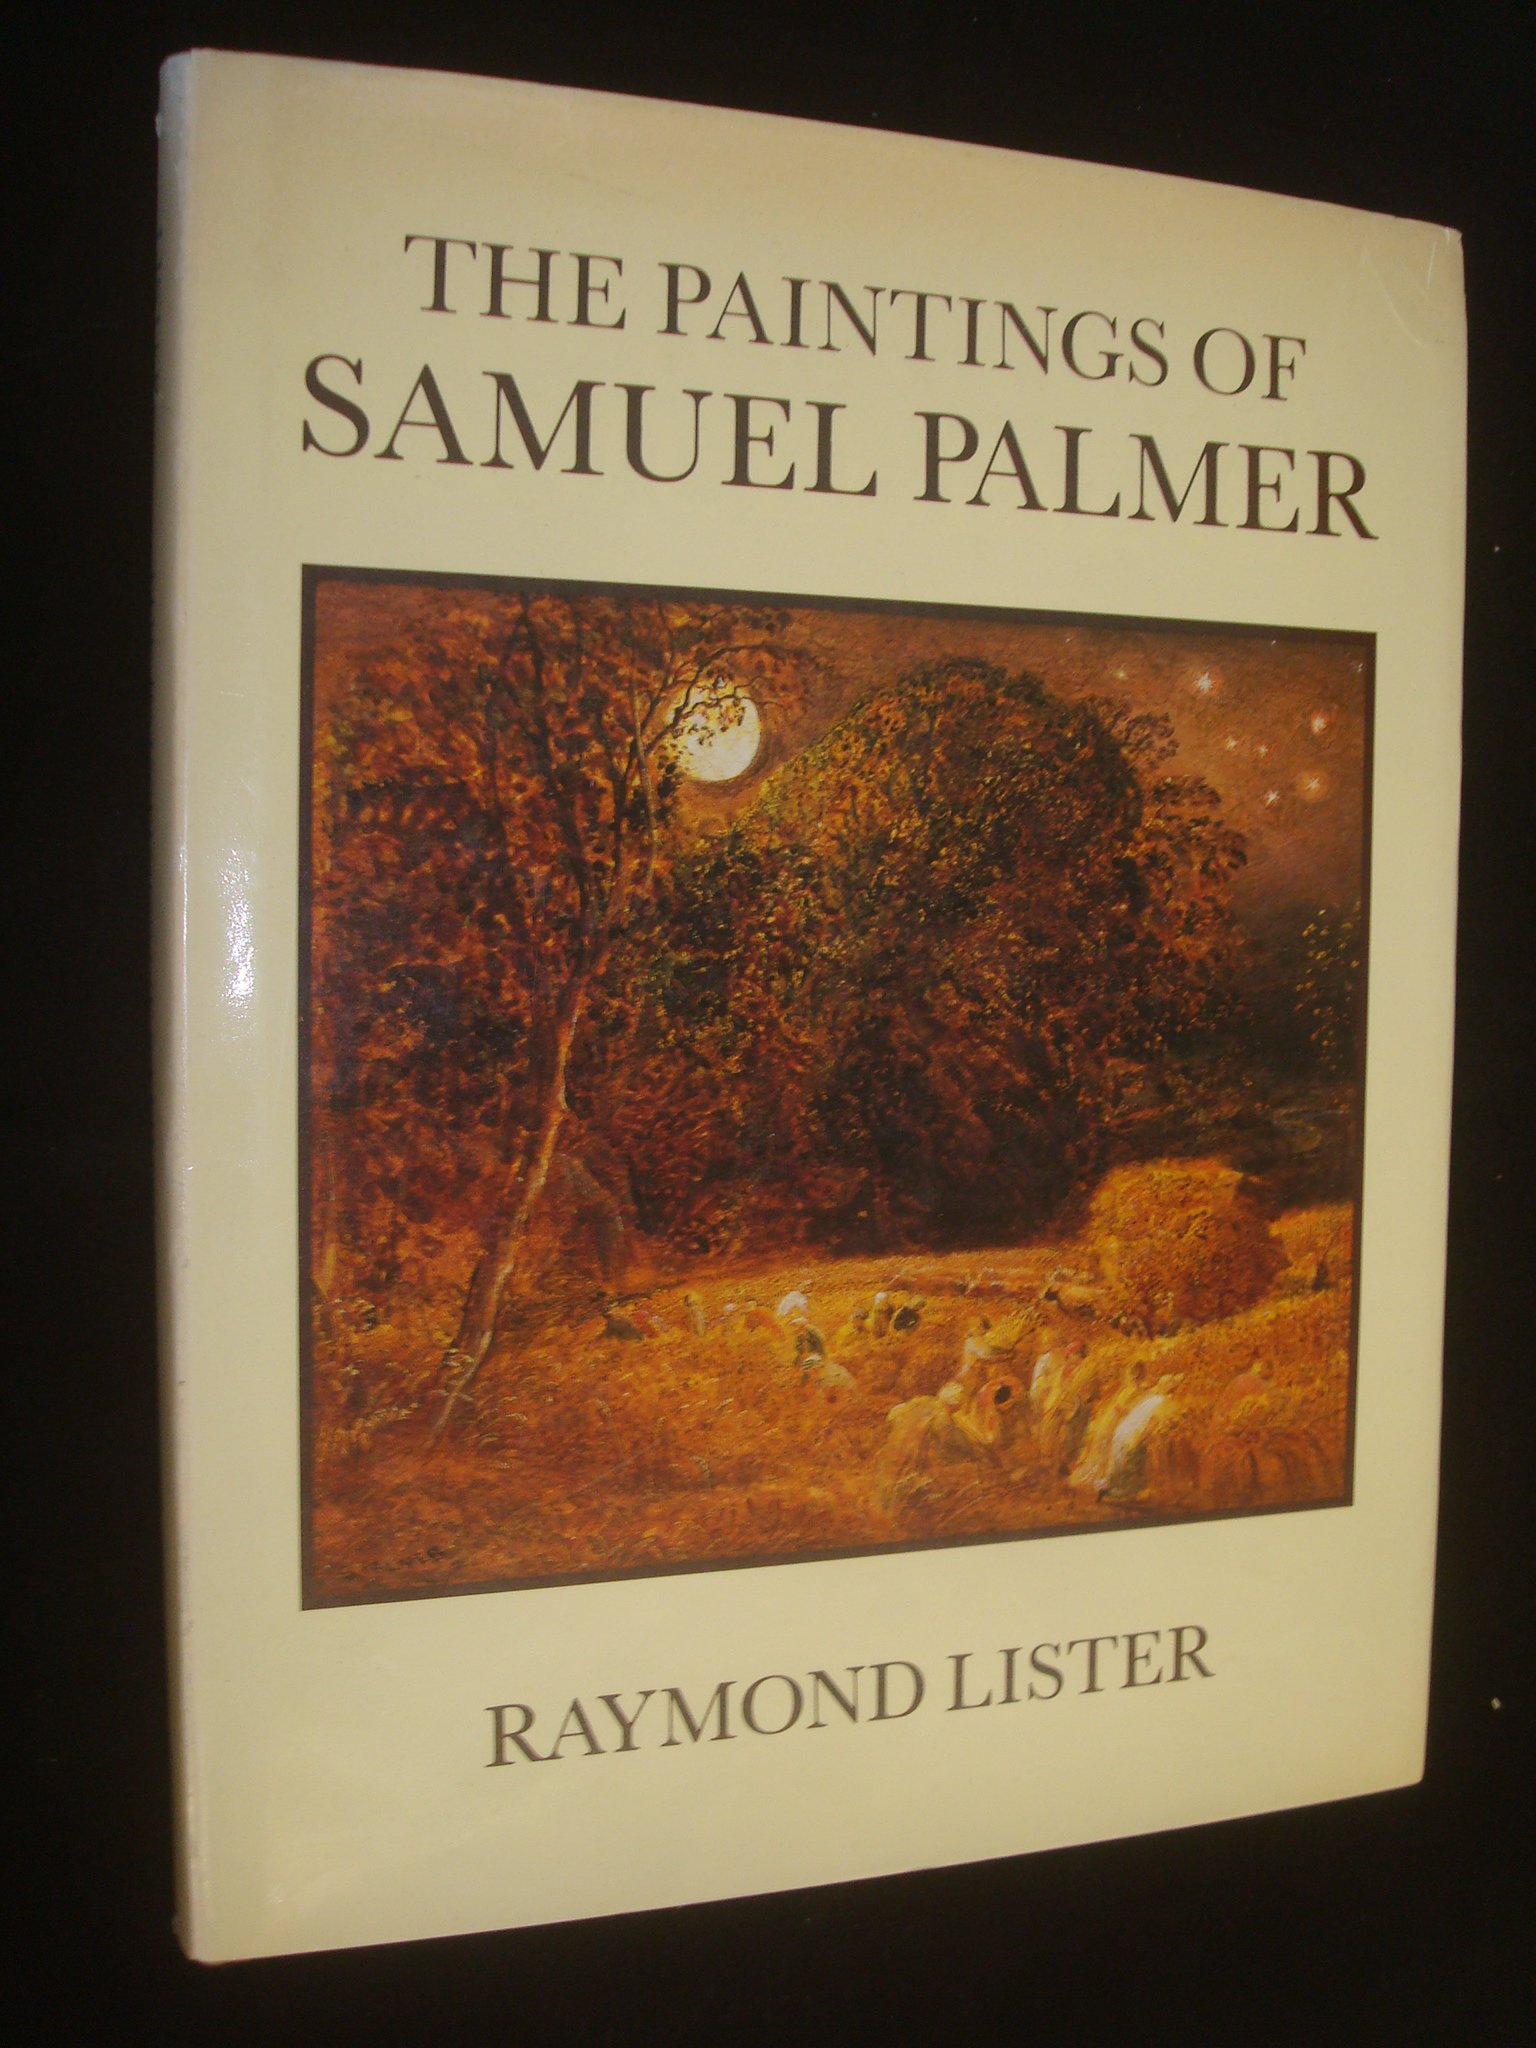 The Paintings Of Samuel Palmer: Amazon: Raymond Lister:  9780521267601: Books